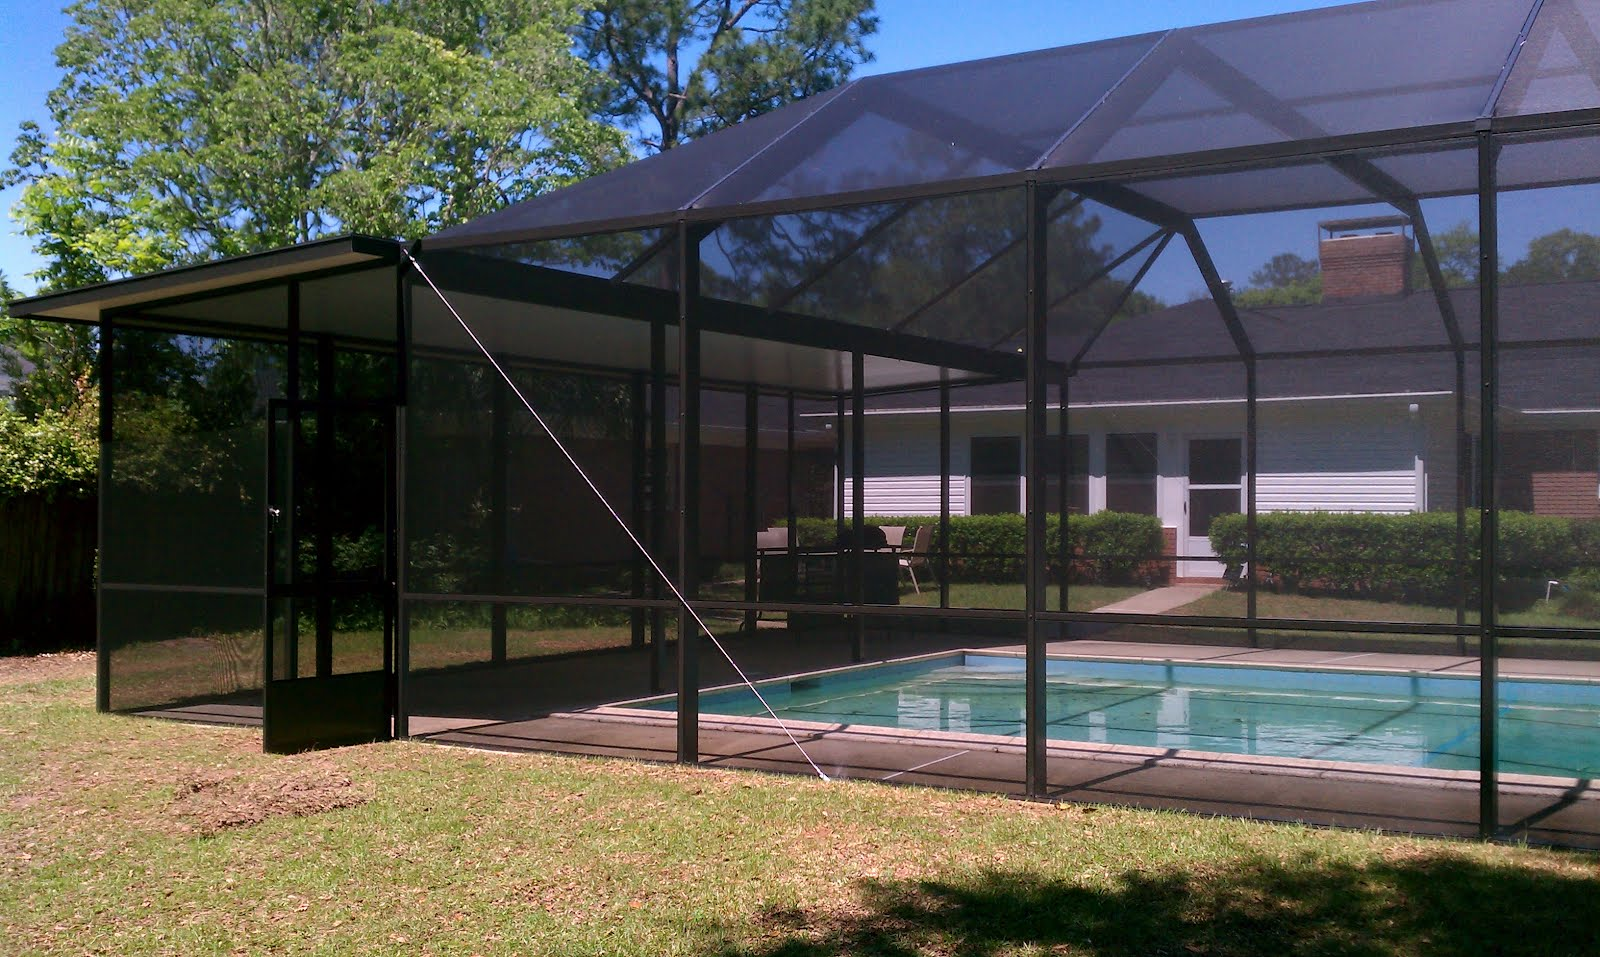 Pool Enclosures Usa Tallahassee Pool Enclosure With Solid Roof Area